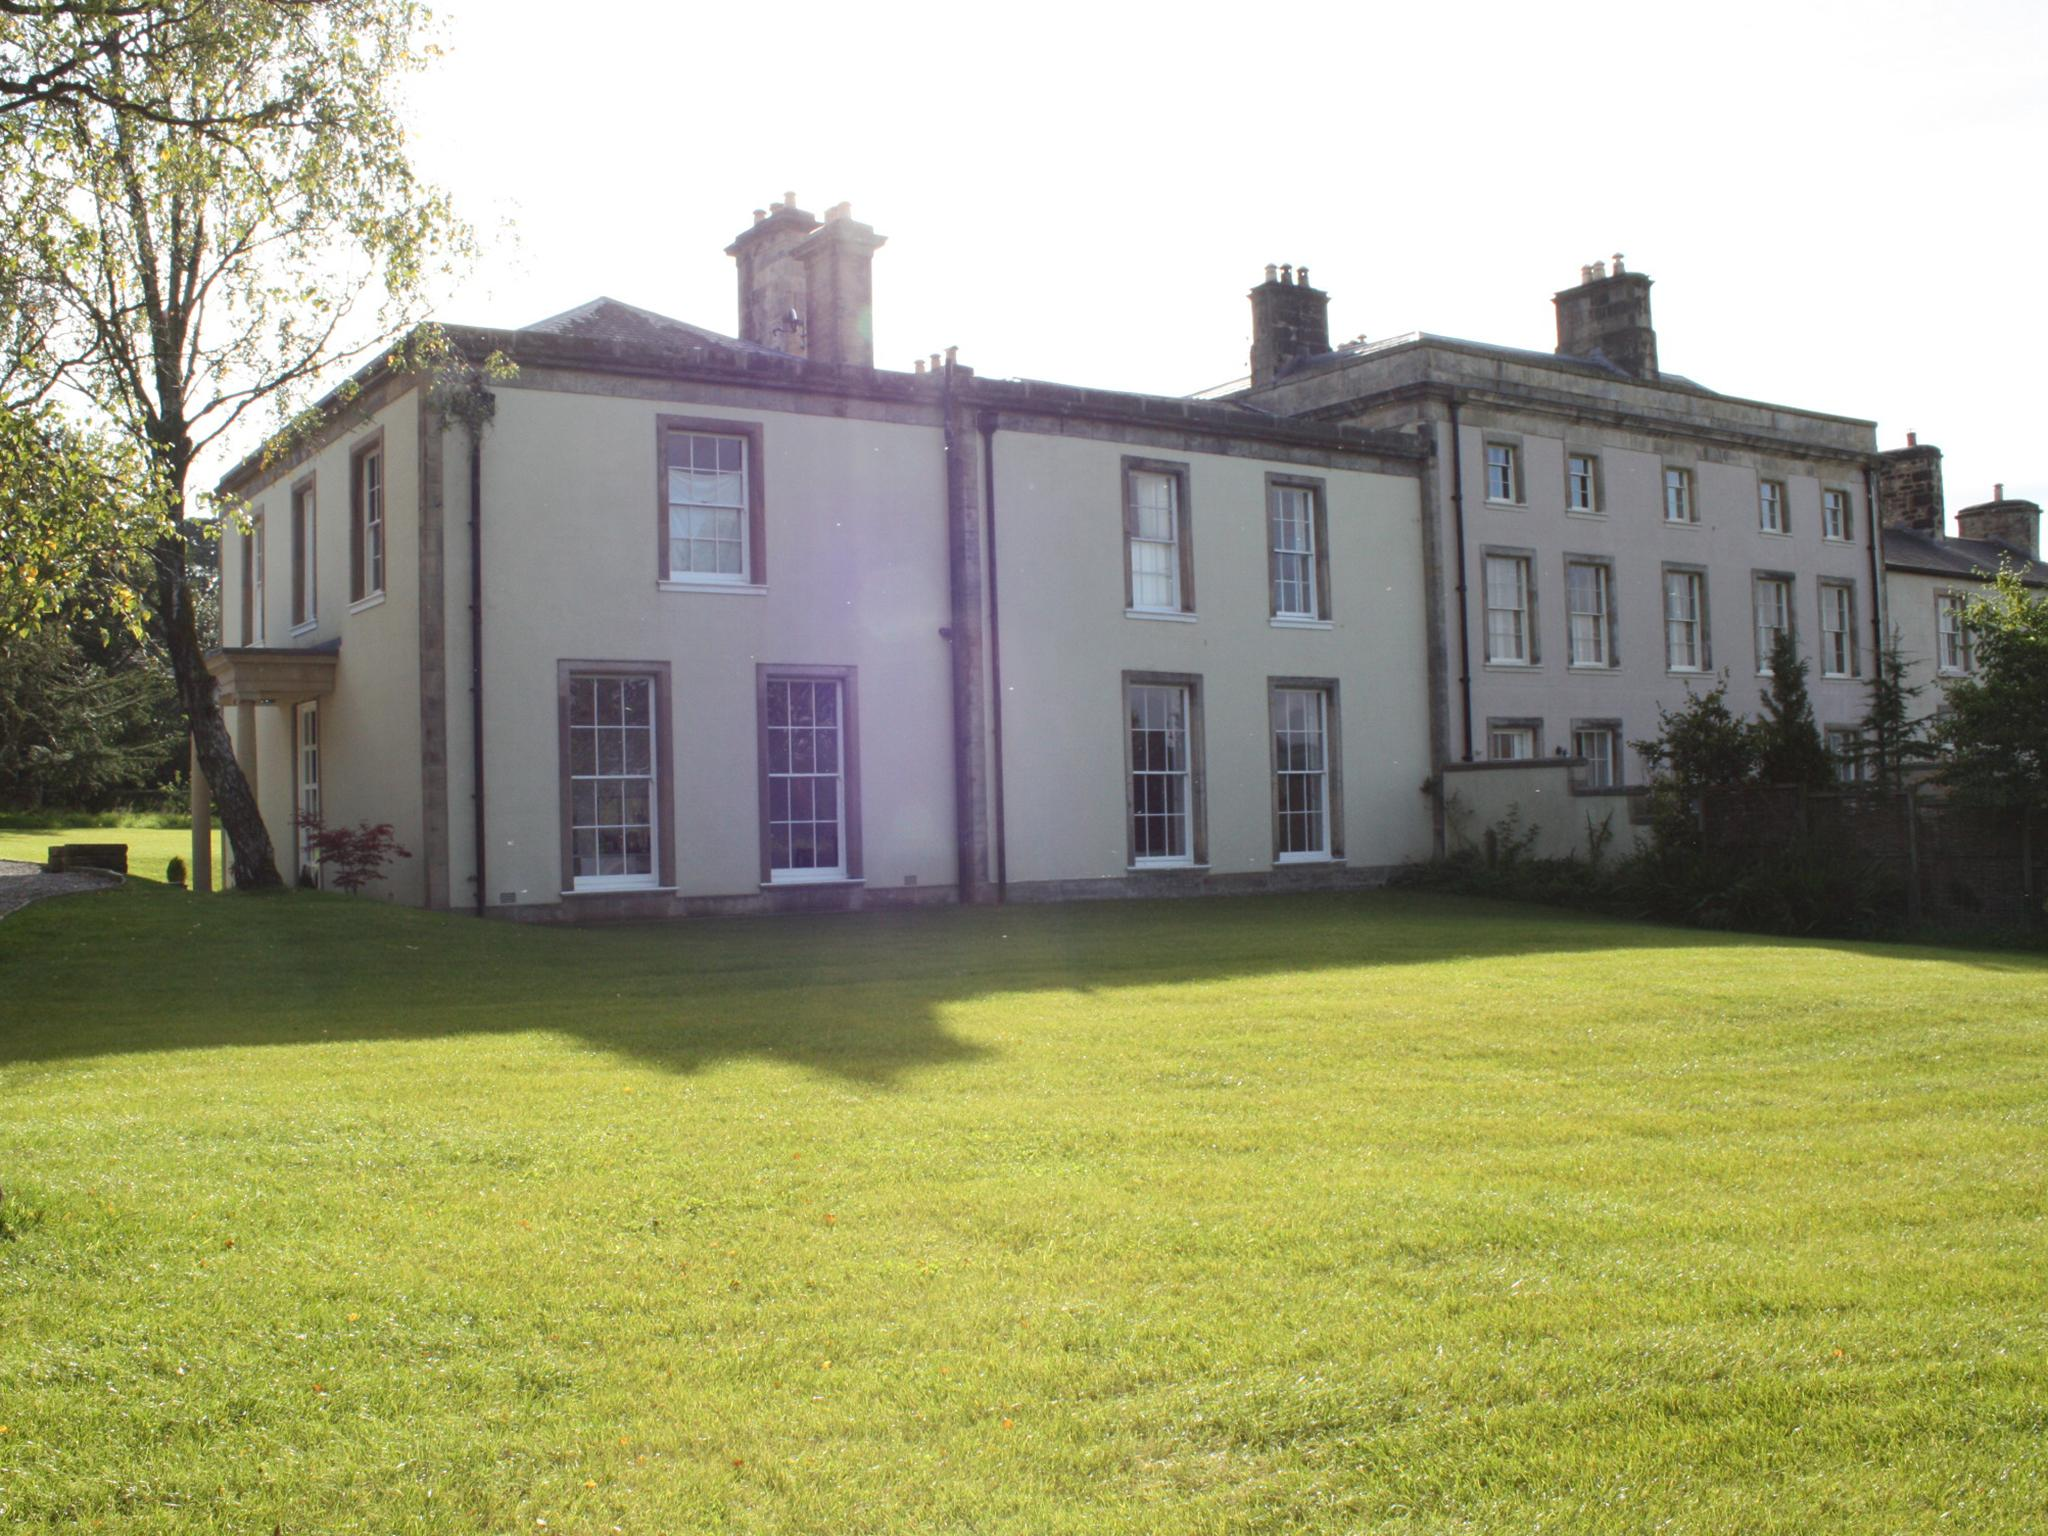 A woman just won an 800,000 Lancashire manor house (with a title) in a raffle